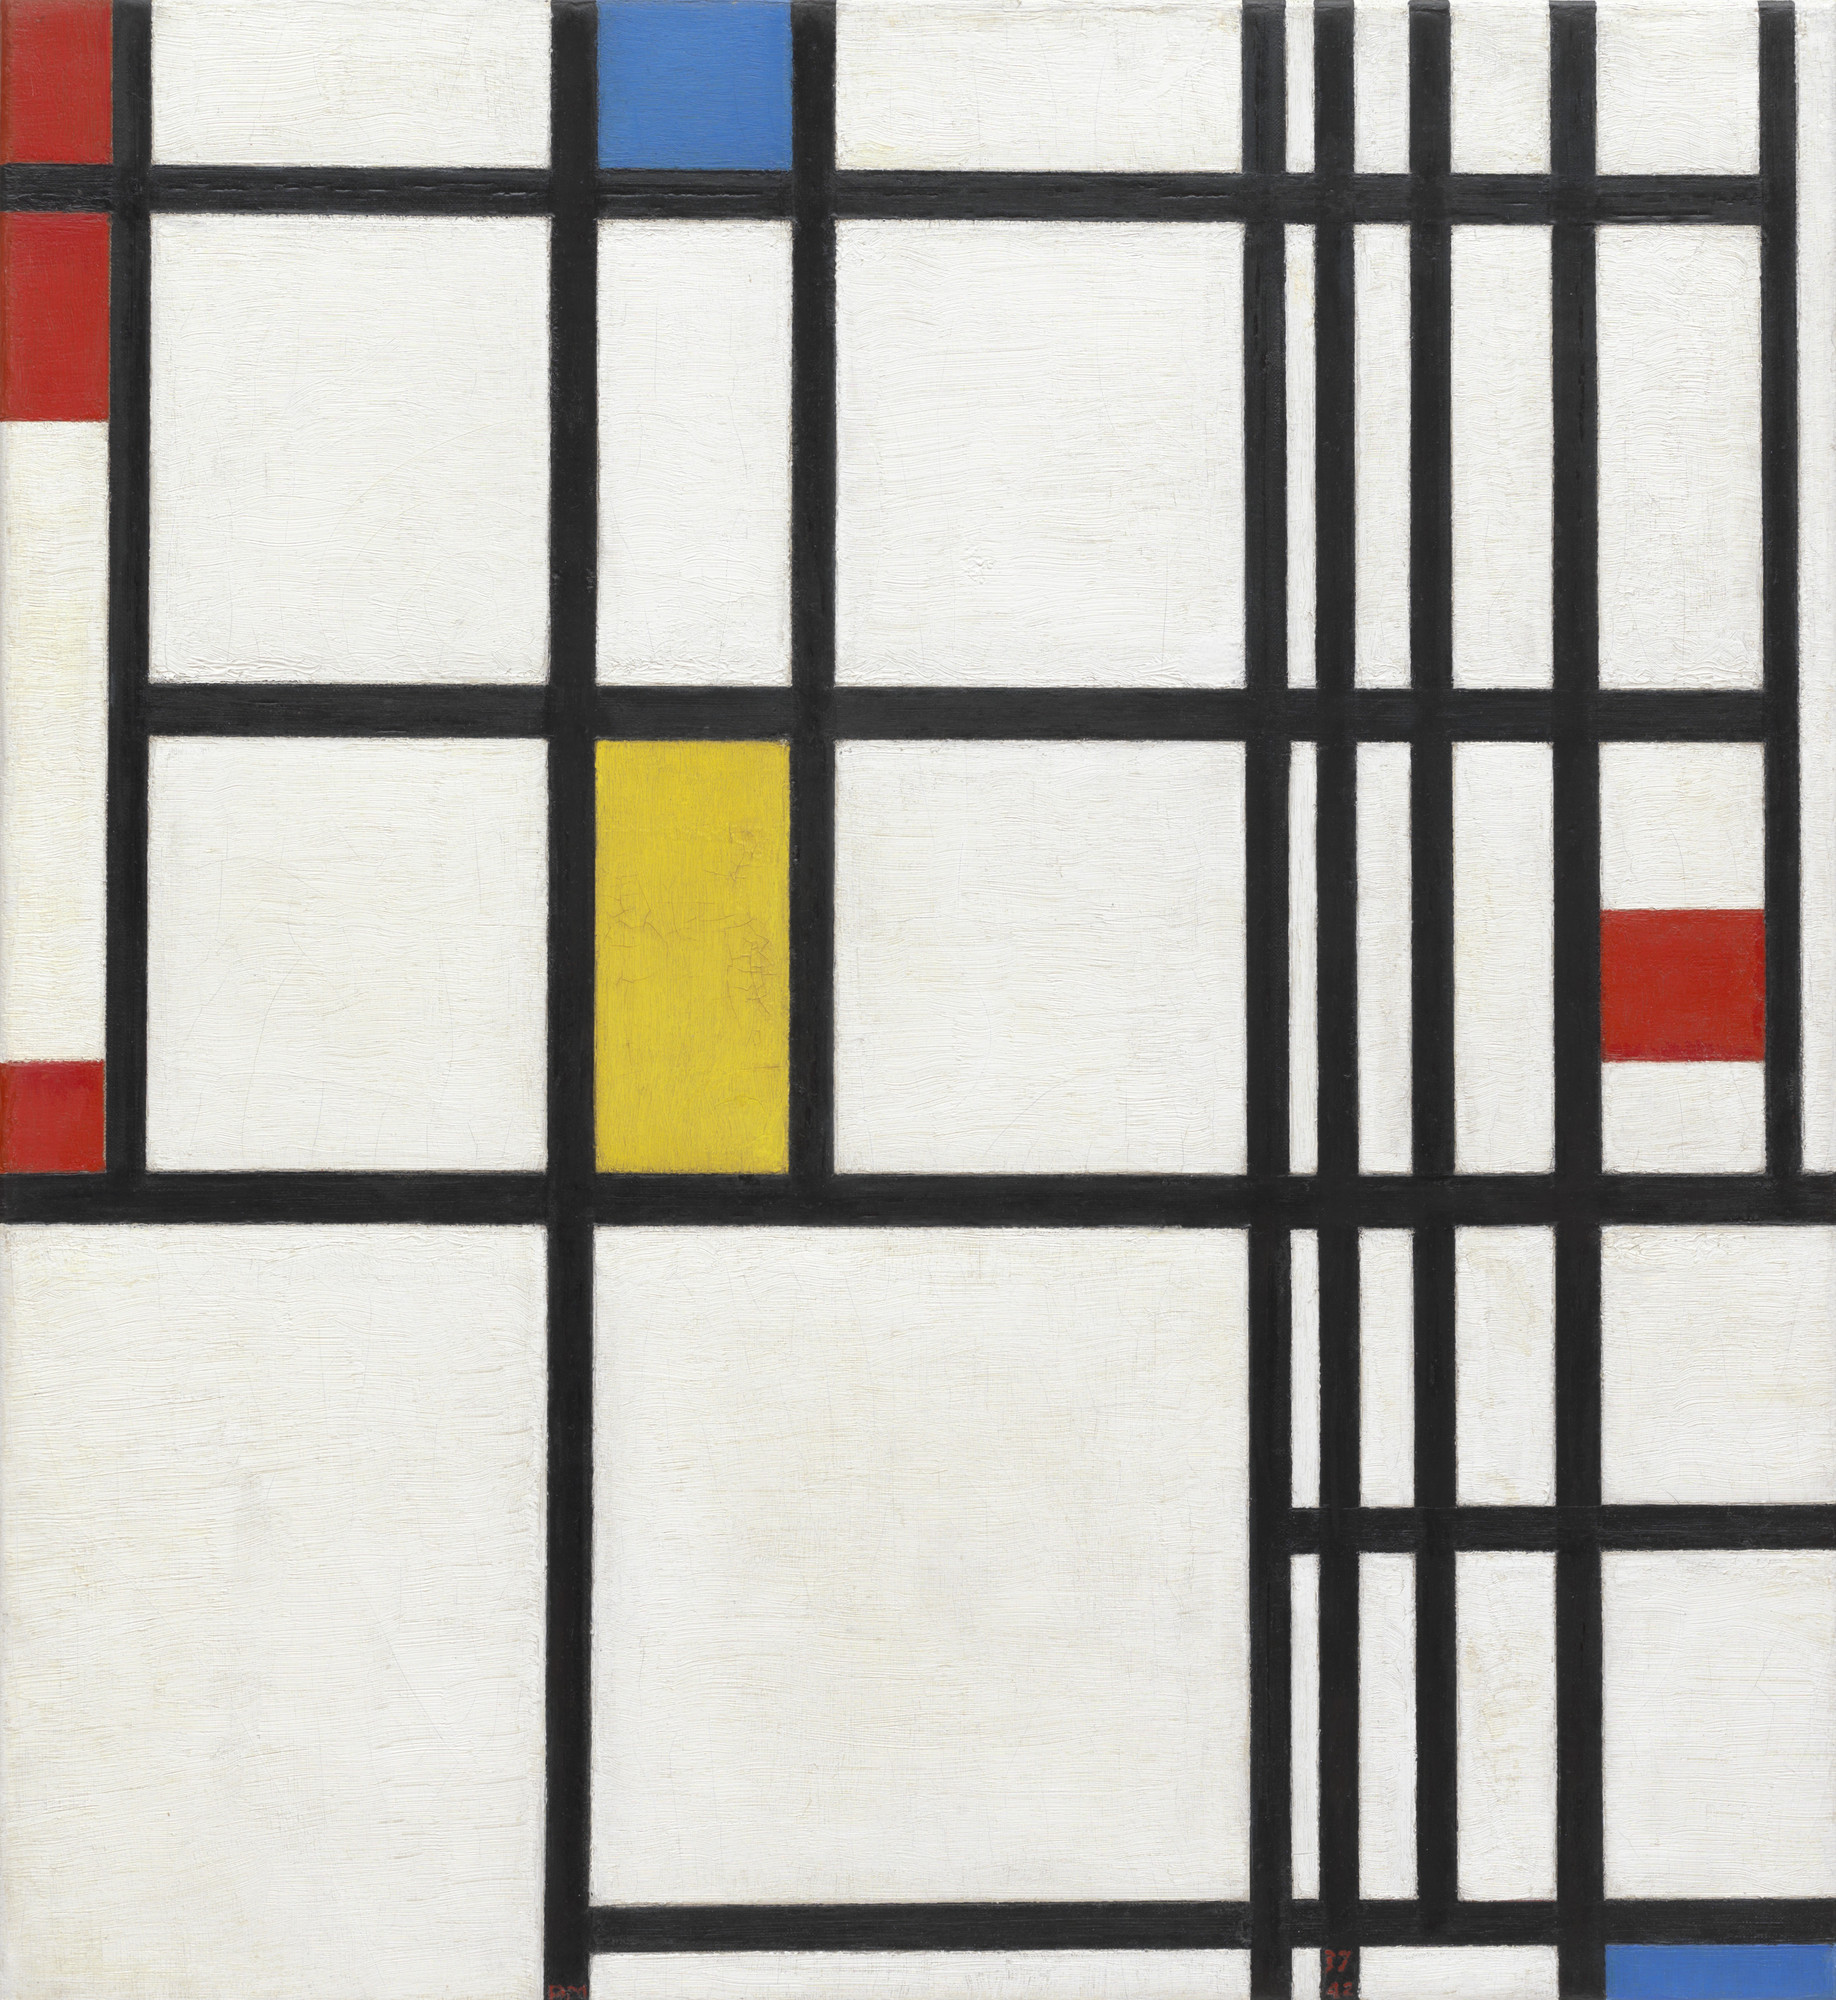 Piet Mondrian. Composition in Red, Blue, and Yellow. 1937-42